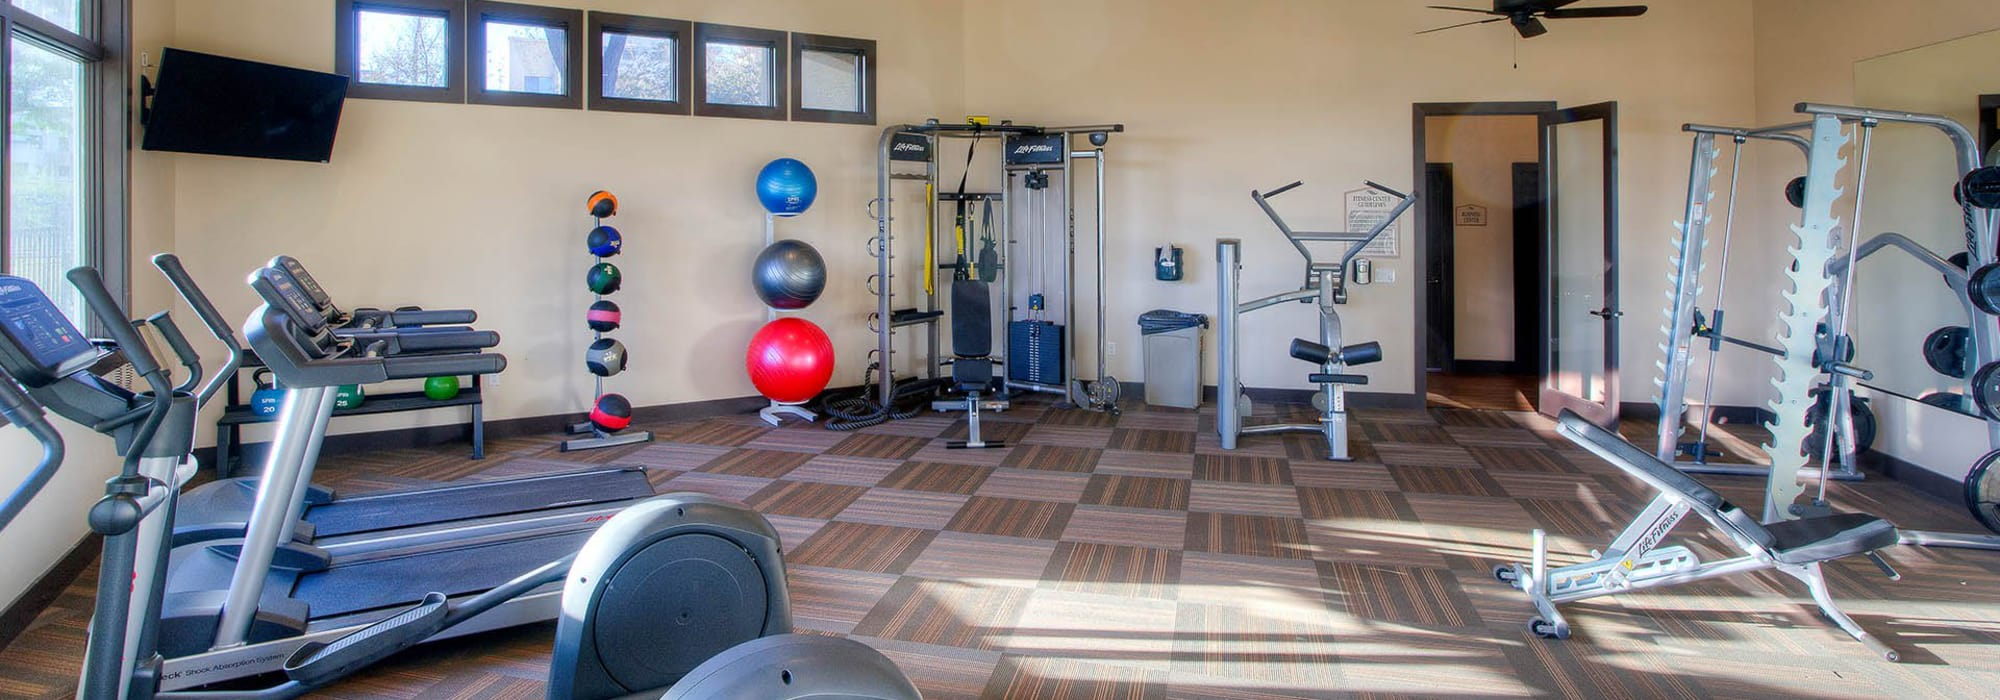 Fitness center at The Reserve at Gilbert Towne Centre in Gilbert, Arizona